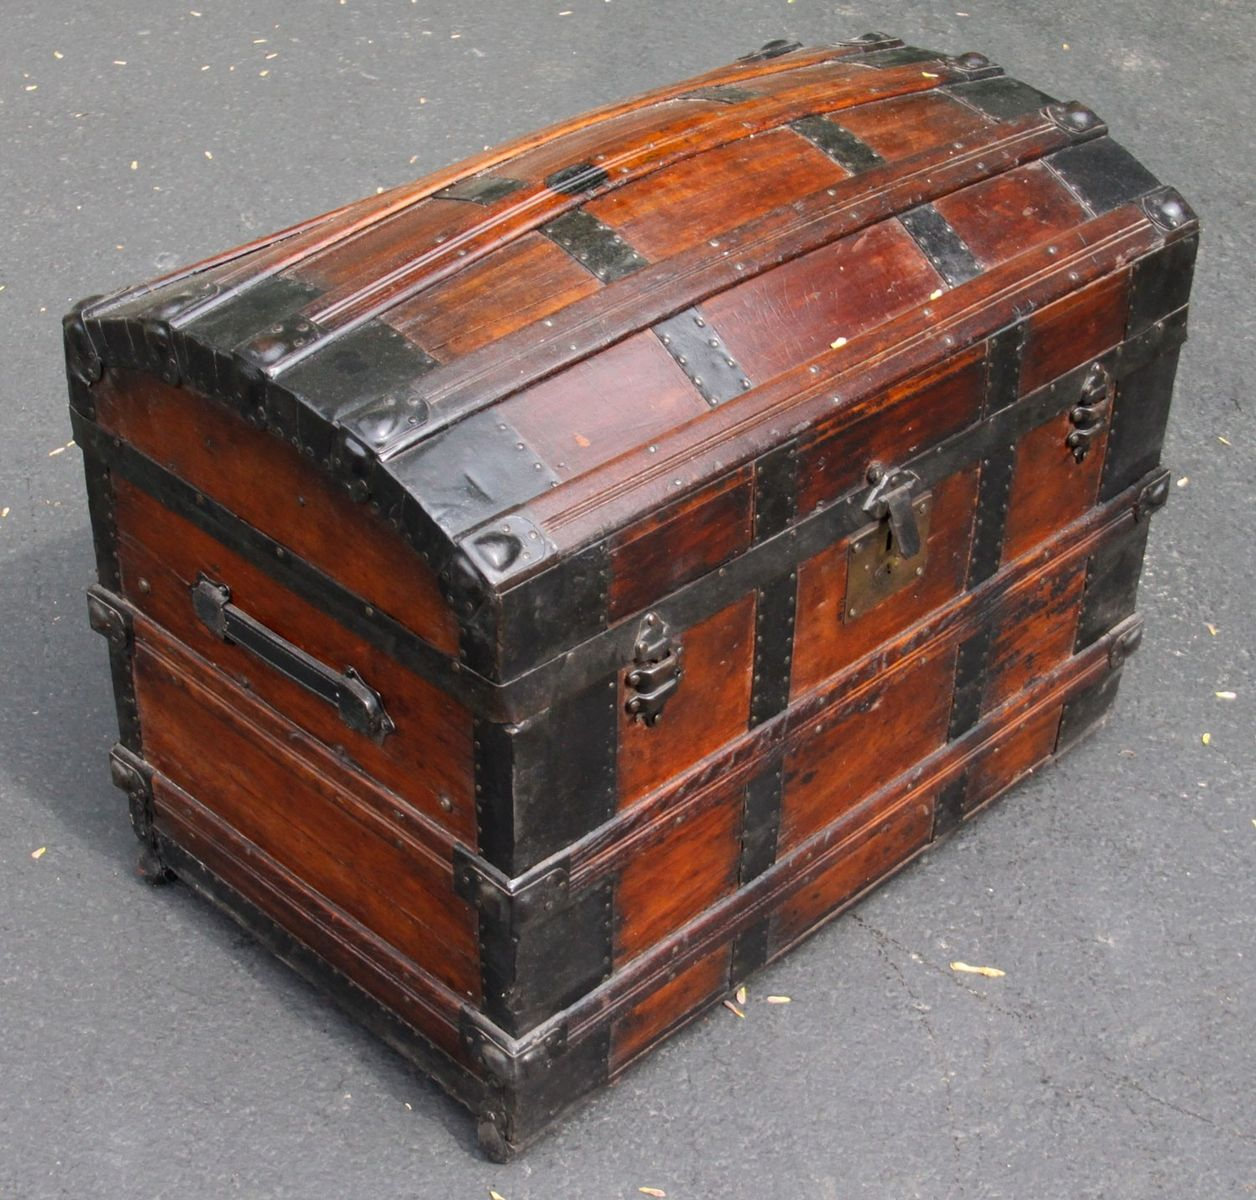 Craigslist 3 Bedroom Custom Made Trunk Chest Restoration By Artisans Of The